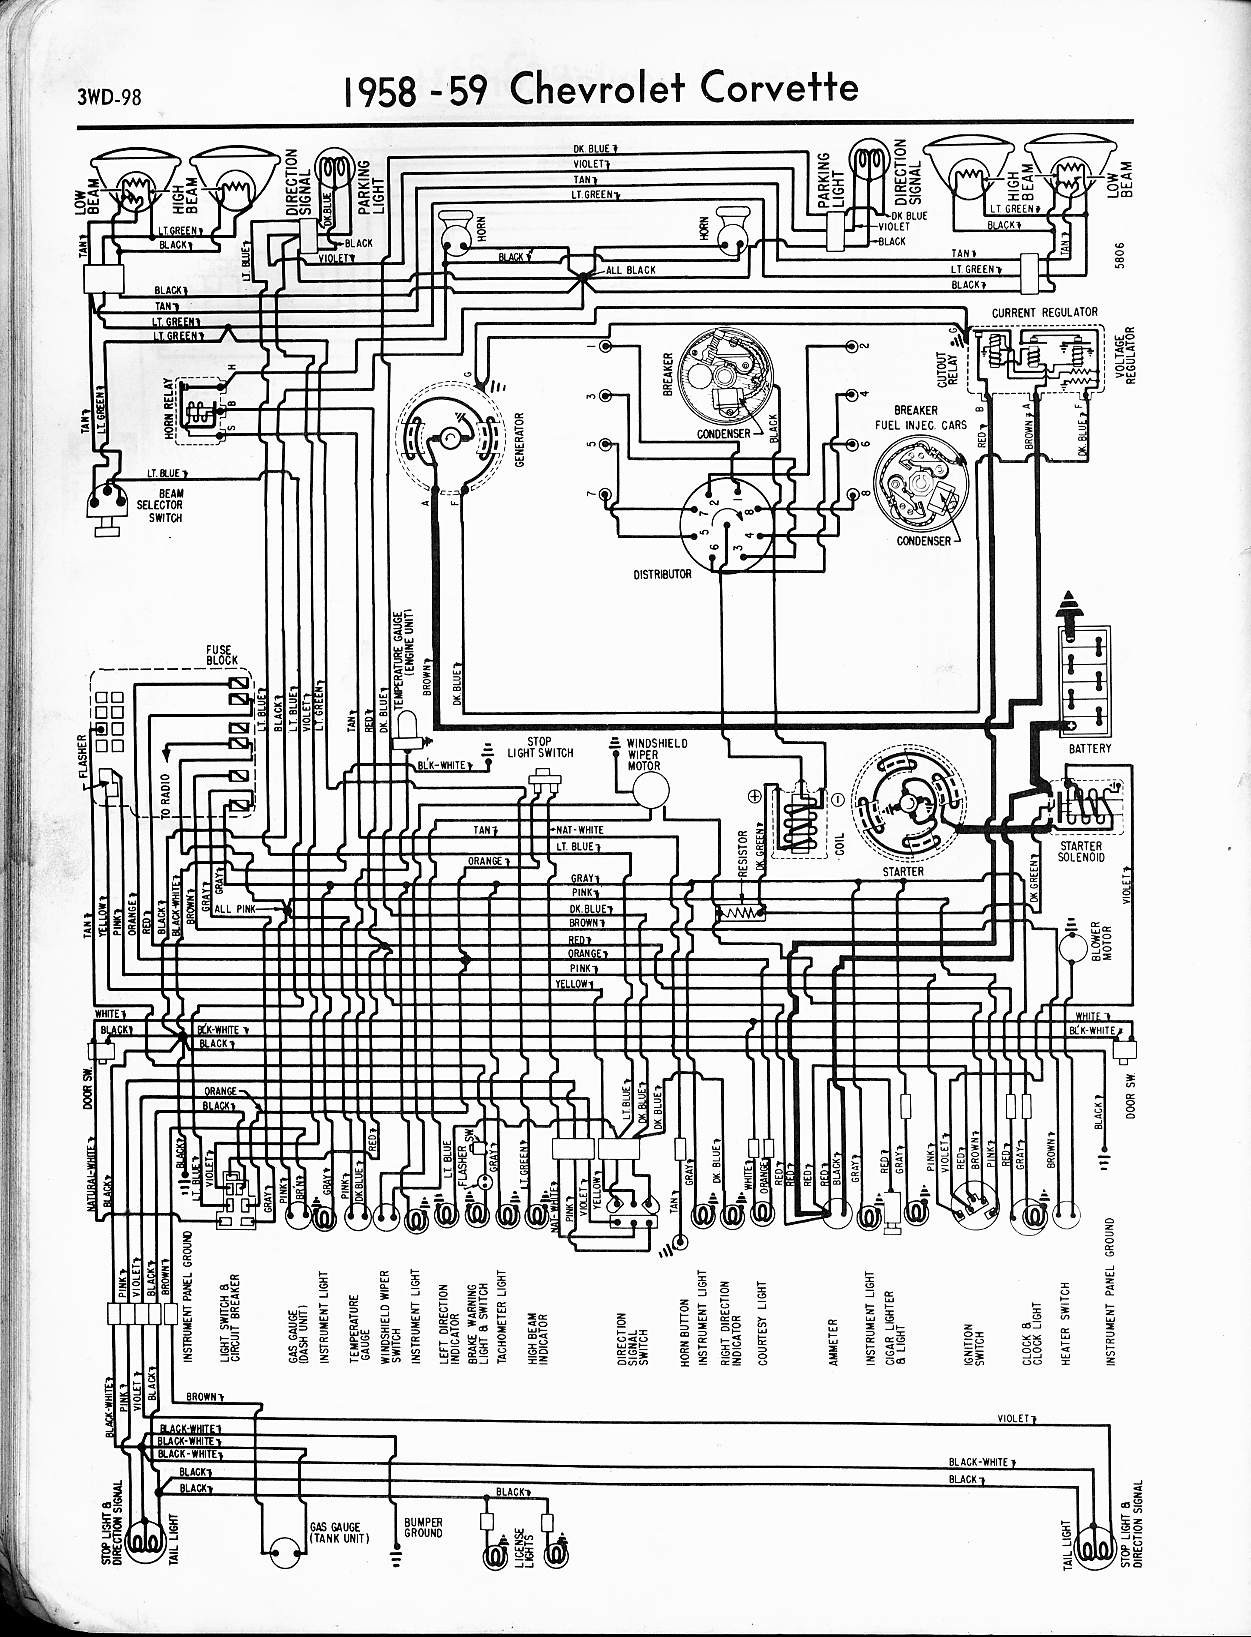 2002 Impala Wiring Diagram 57 65 Chevy Wiring Diagrams Of 2002 Impala Wiring Diagram